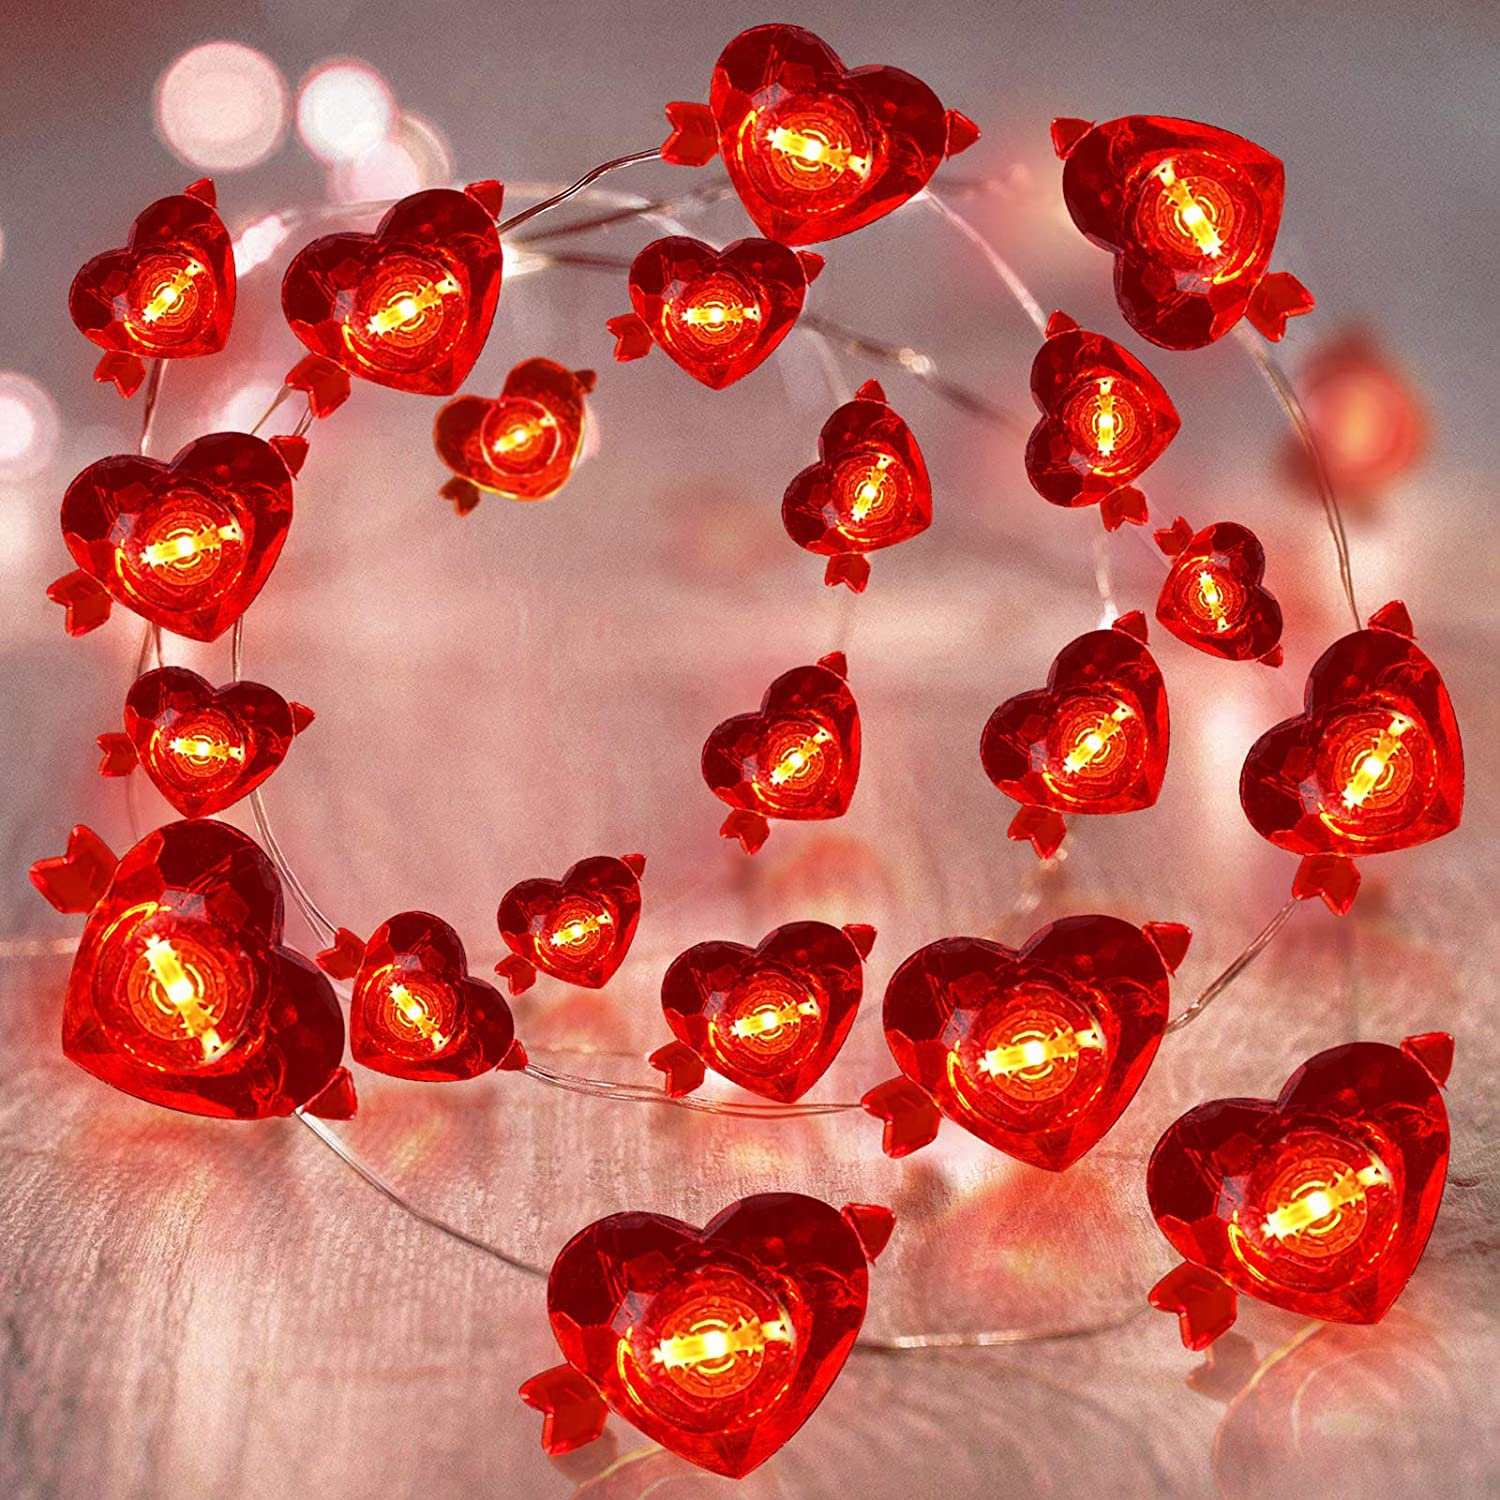 TURNMEON 10Ft 40Led Valentines Heart Lights Decorations Red Fairy String Lights Battery Operated Copper Wire Bedroom Wedding Valentines Day Decorations Indoor Outdoor Home Party Favors Supplies(Heart)